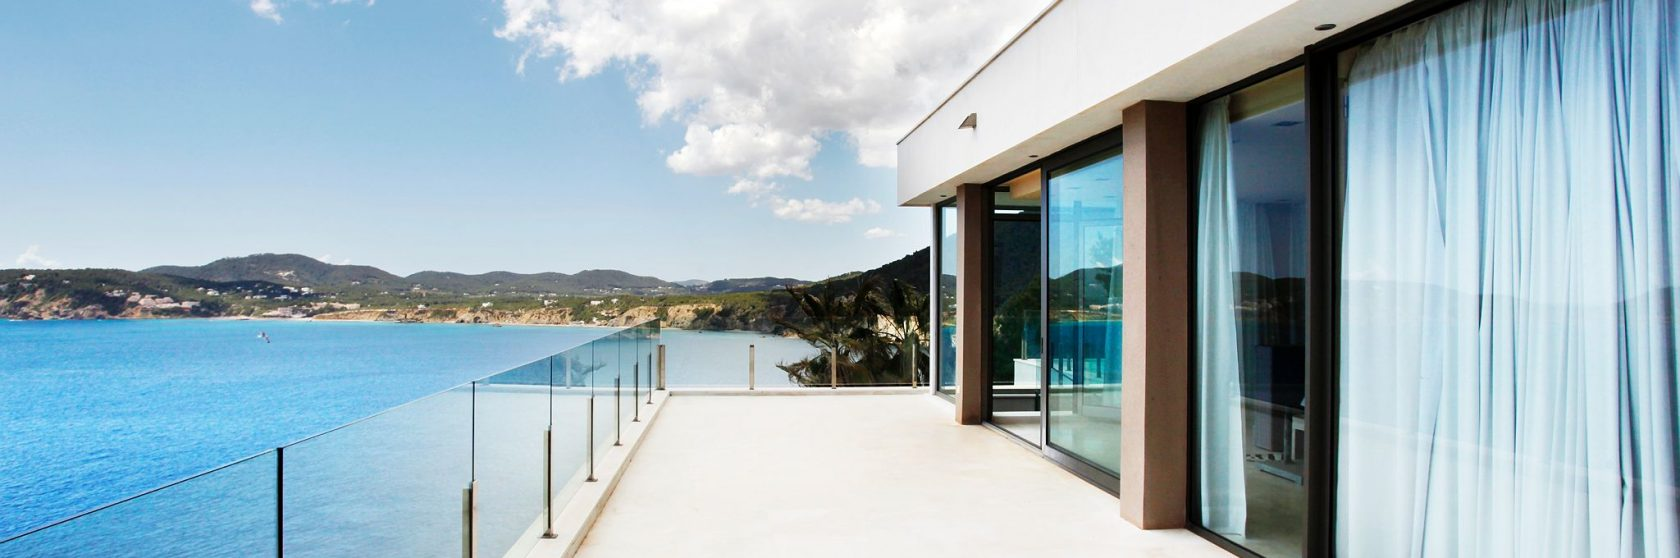 ibiza real estate news villa contact